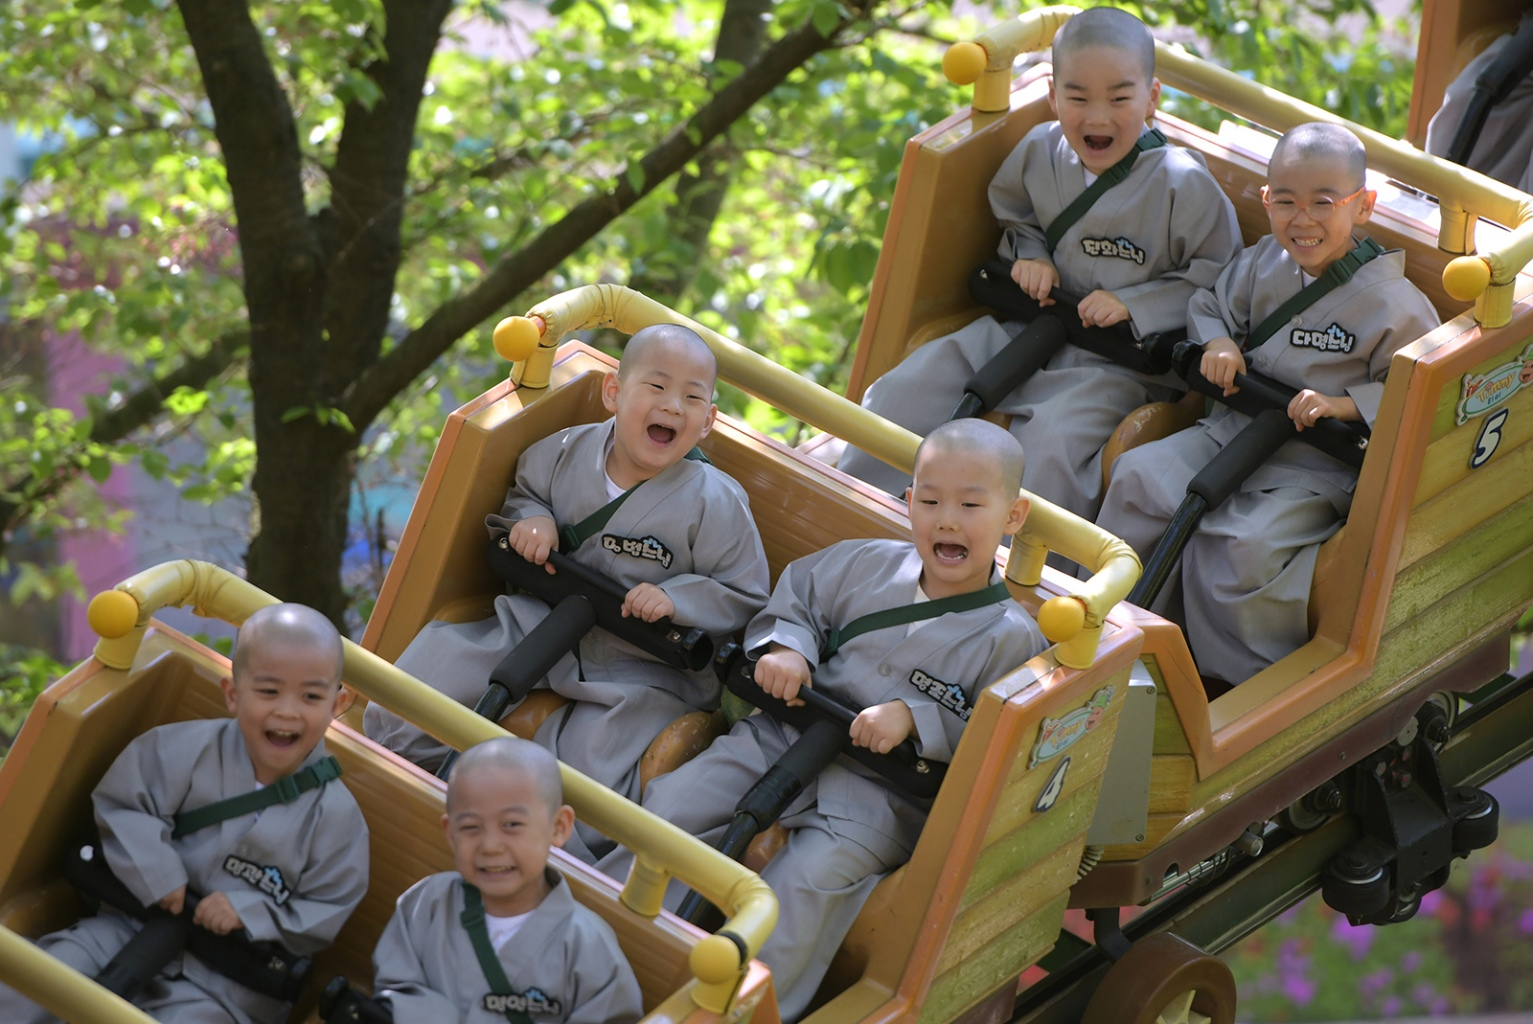 South Korean children ride a roller coaster as they visit an amusement and animal park during their training program to learn about Buddhism in Yongin, south of Seoul, on May 2. JUNG YEON-JE/AFP/Getty Images